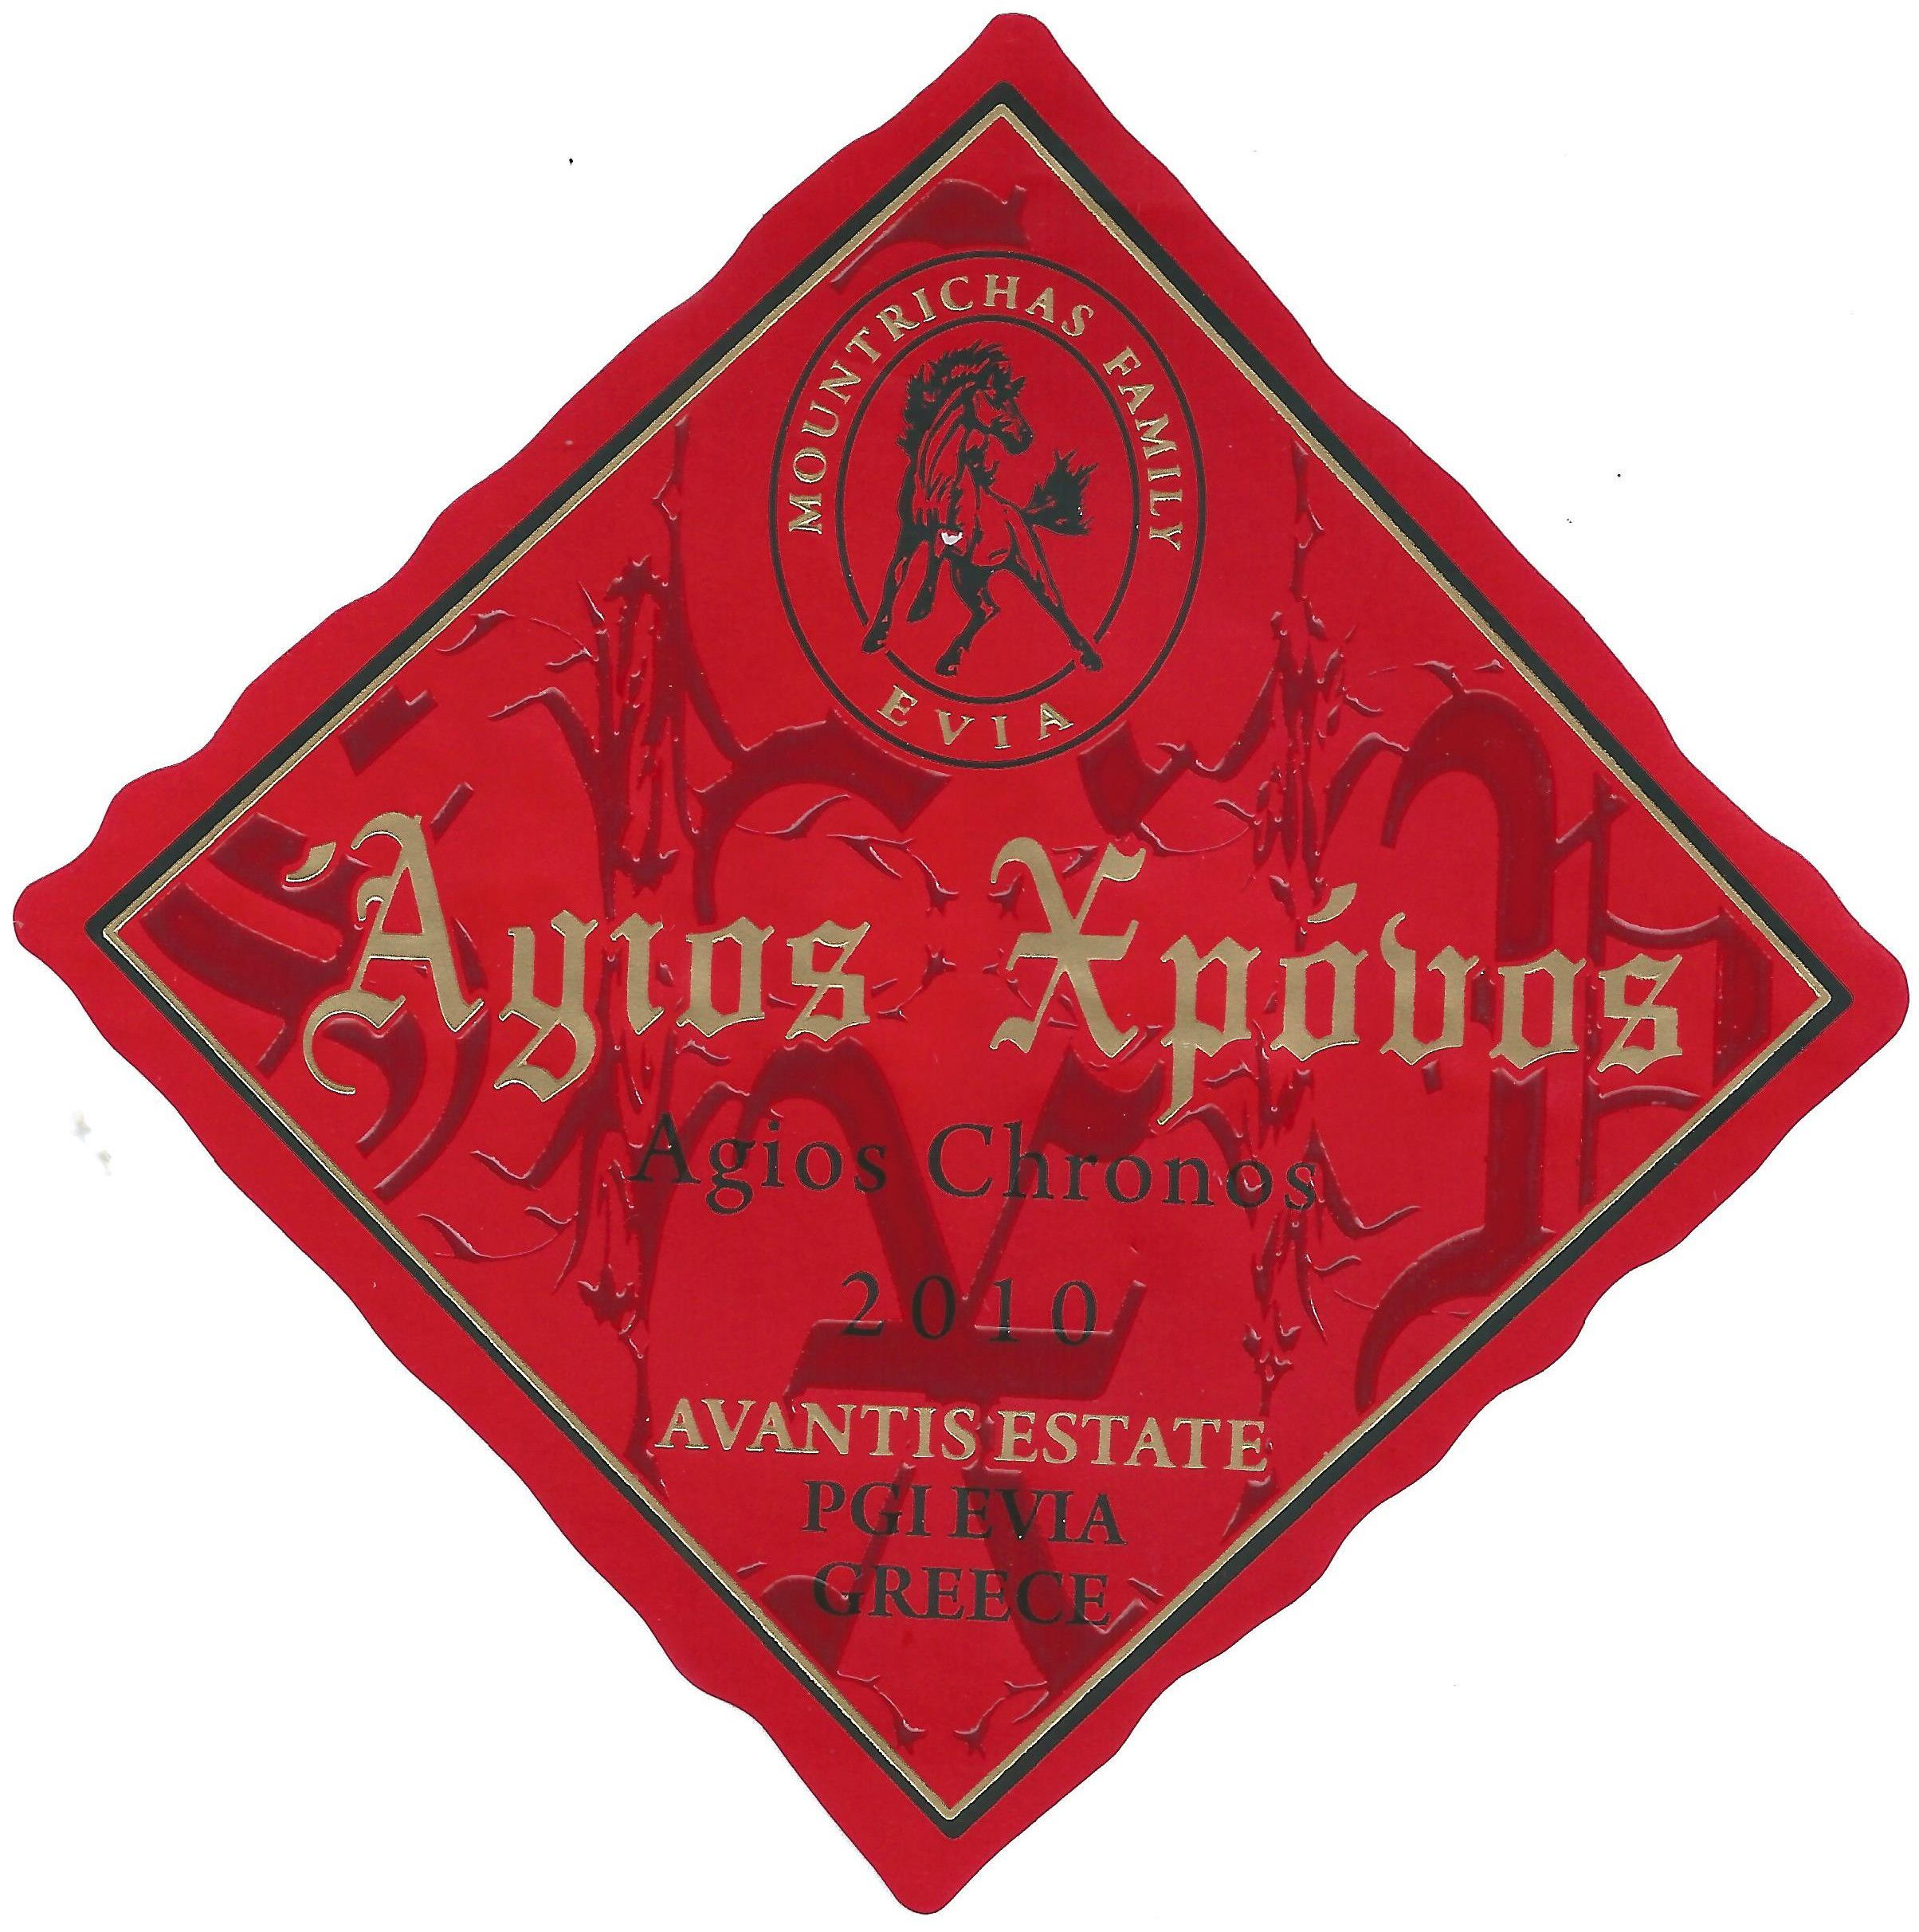 Avantis Wines Agios Chronos 2010 Front Label